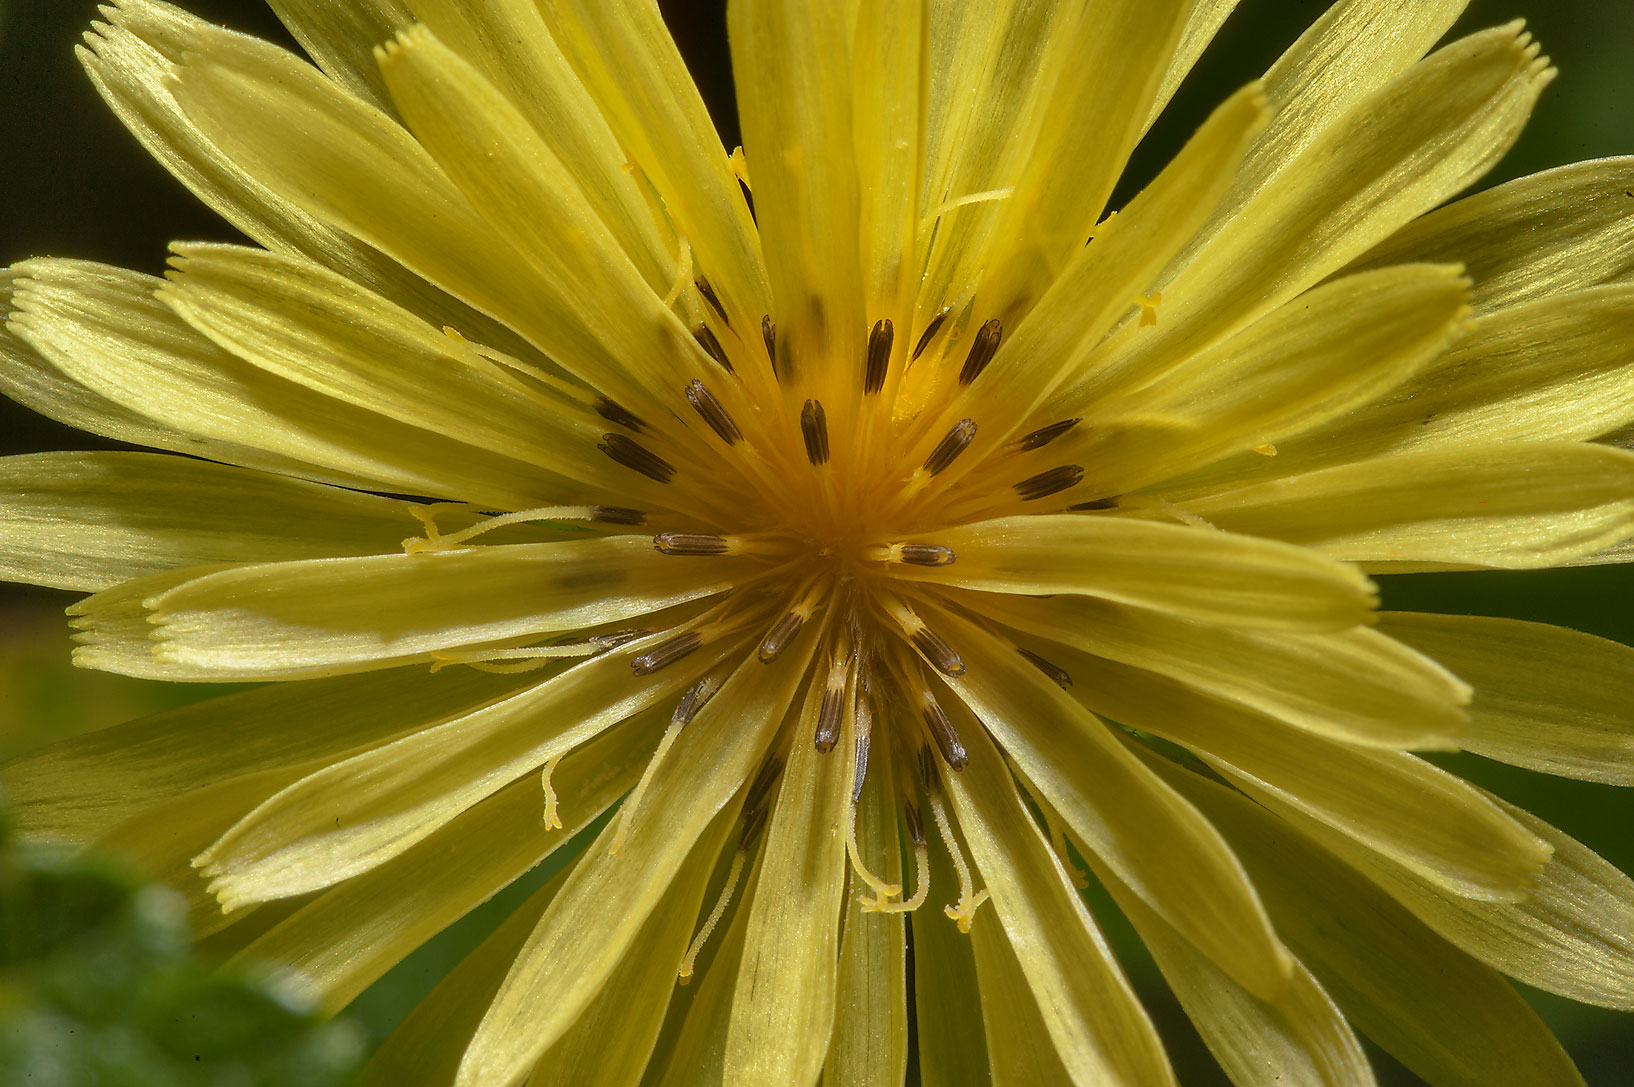 Texas dandelion in Lick Creek Park. College Station, Texas